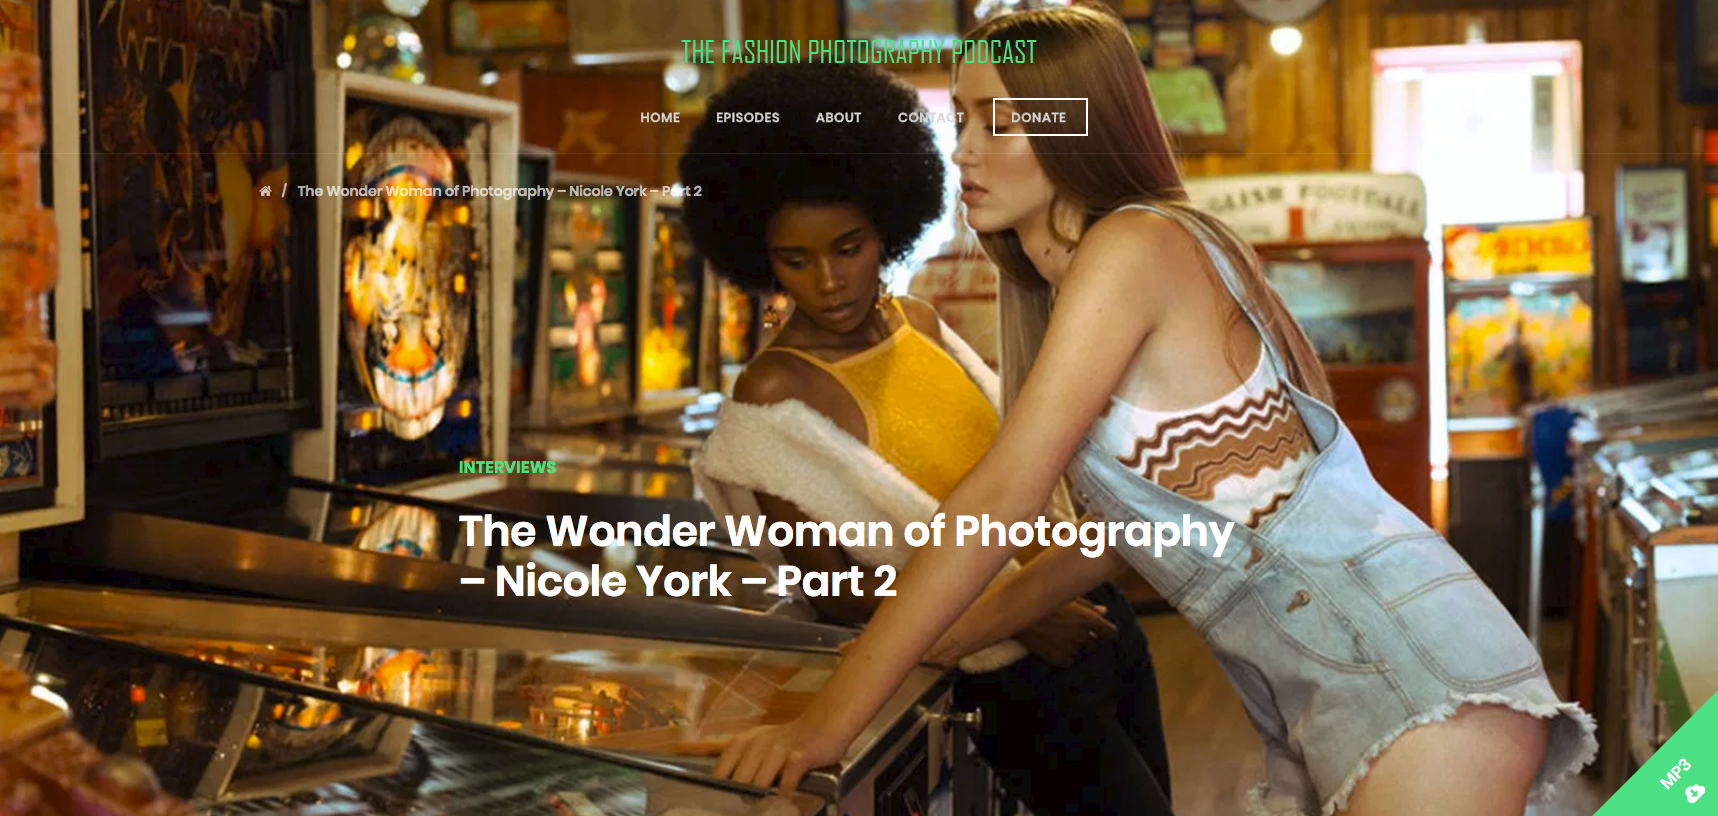 Interview - Three part interview with The Fashion Photography Podcast where Nicole discusses portfolio reviews, developing a style, marketing, and more.LISTEN HERE, on iTunes, at Neverland Magazine, or Jute Magazine